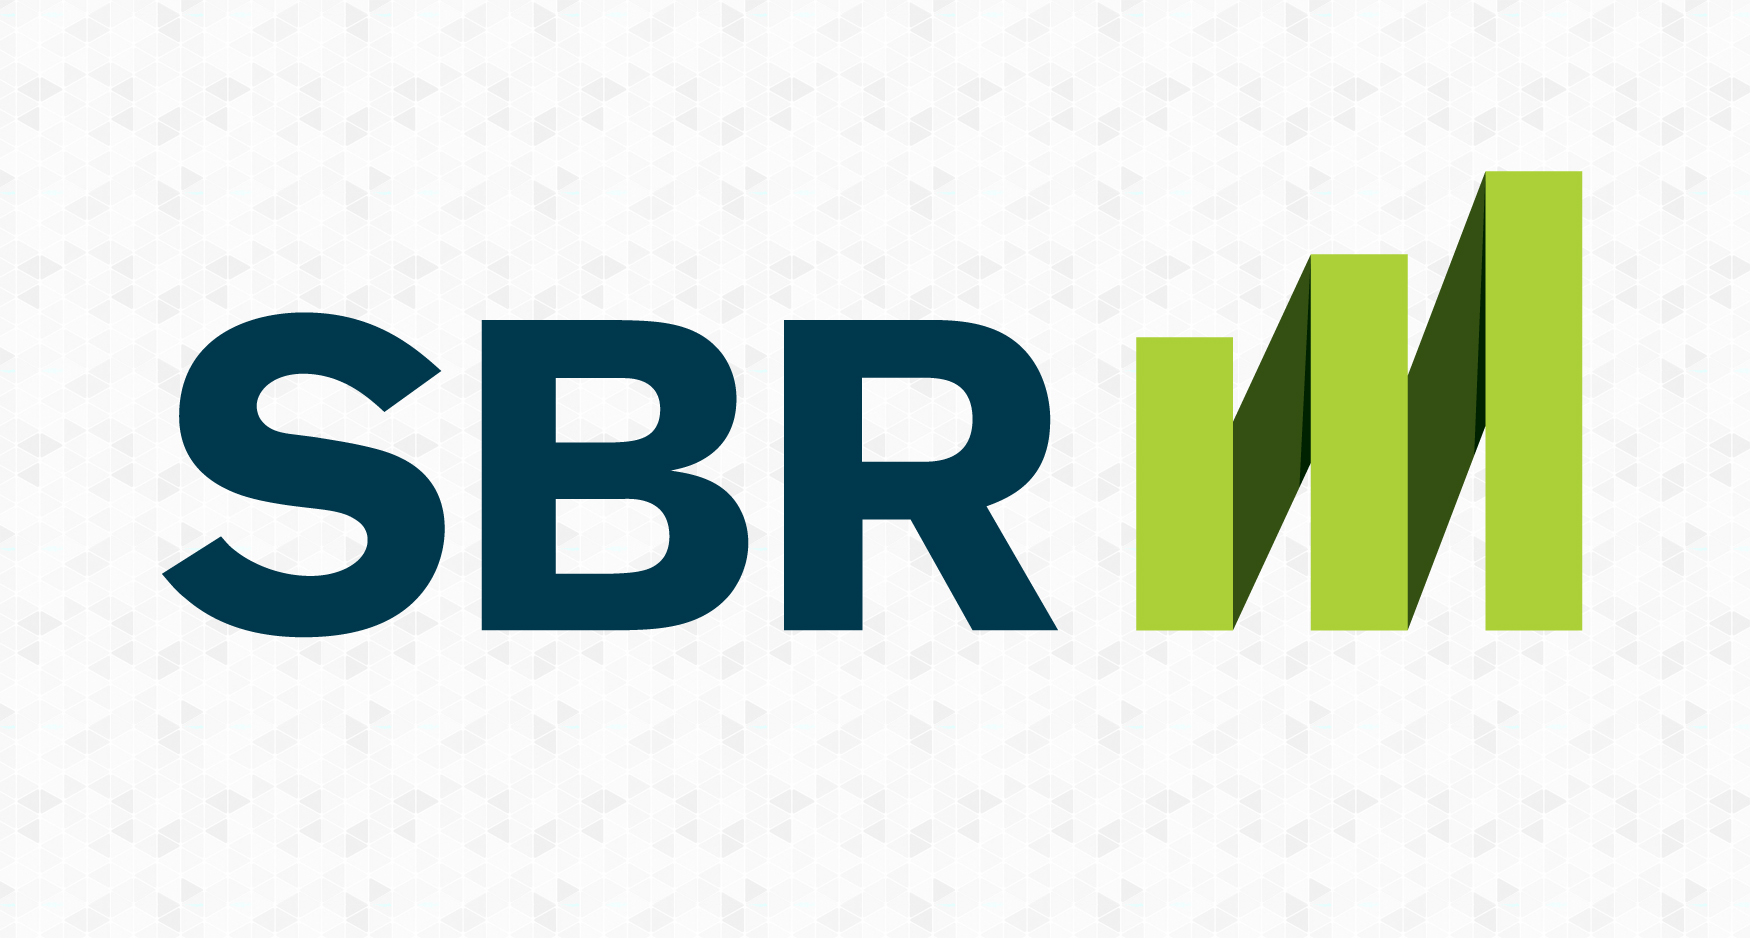 1 SBR Logo - SBR - CORPORATE LOGO